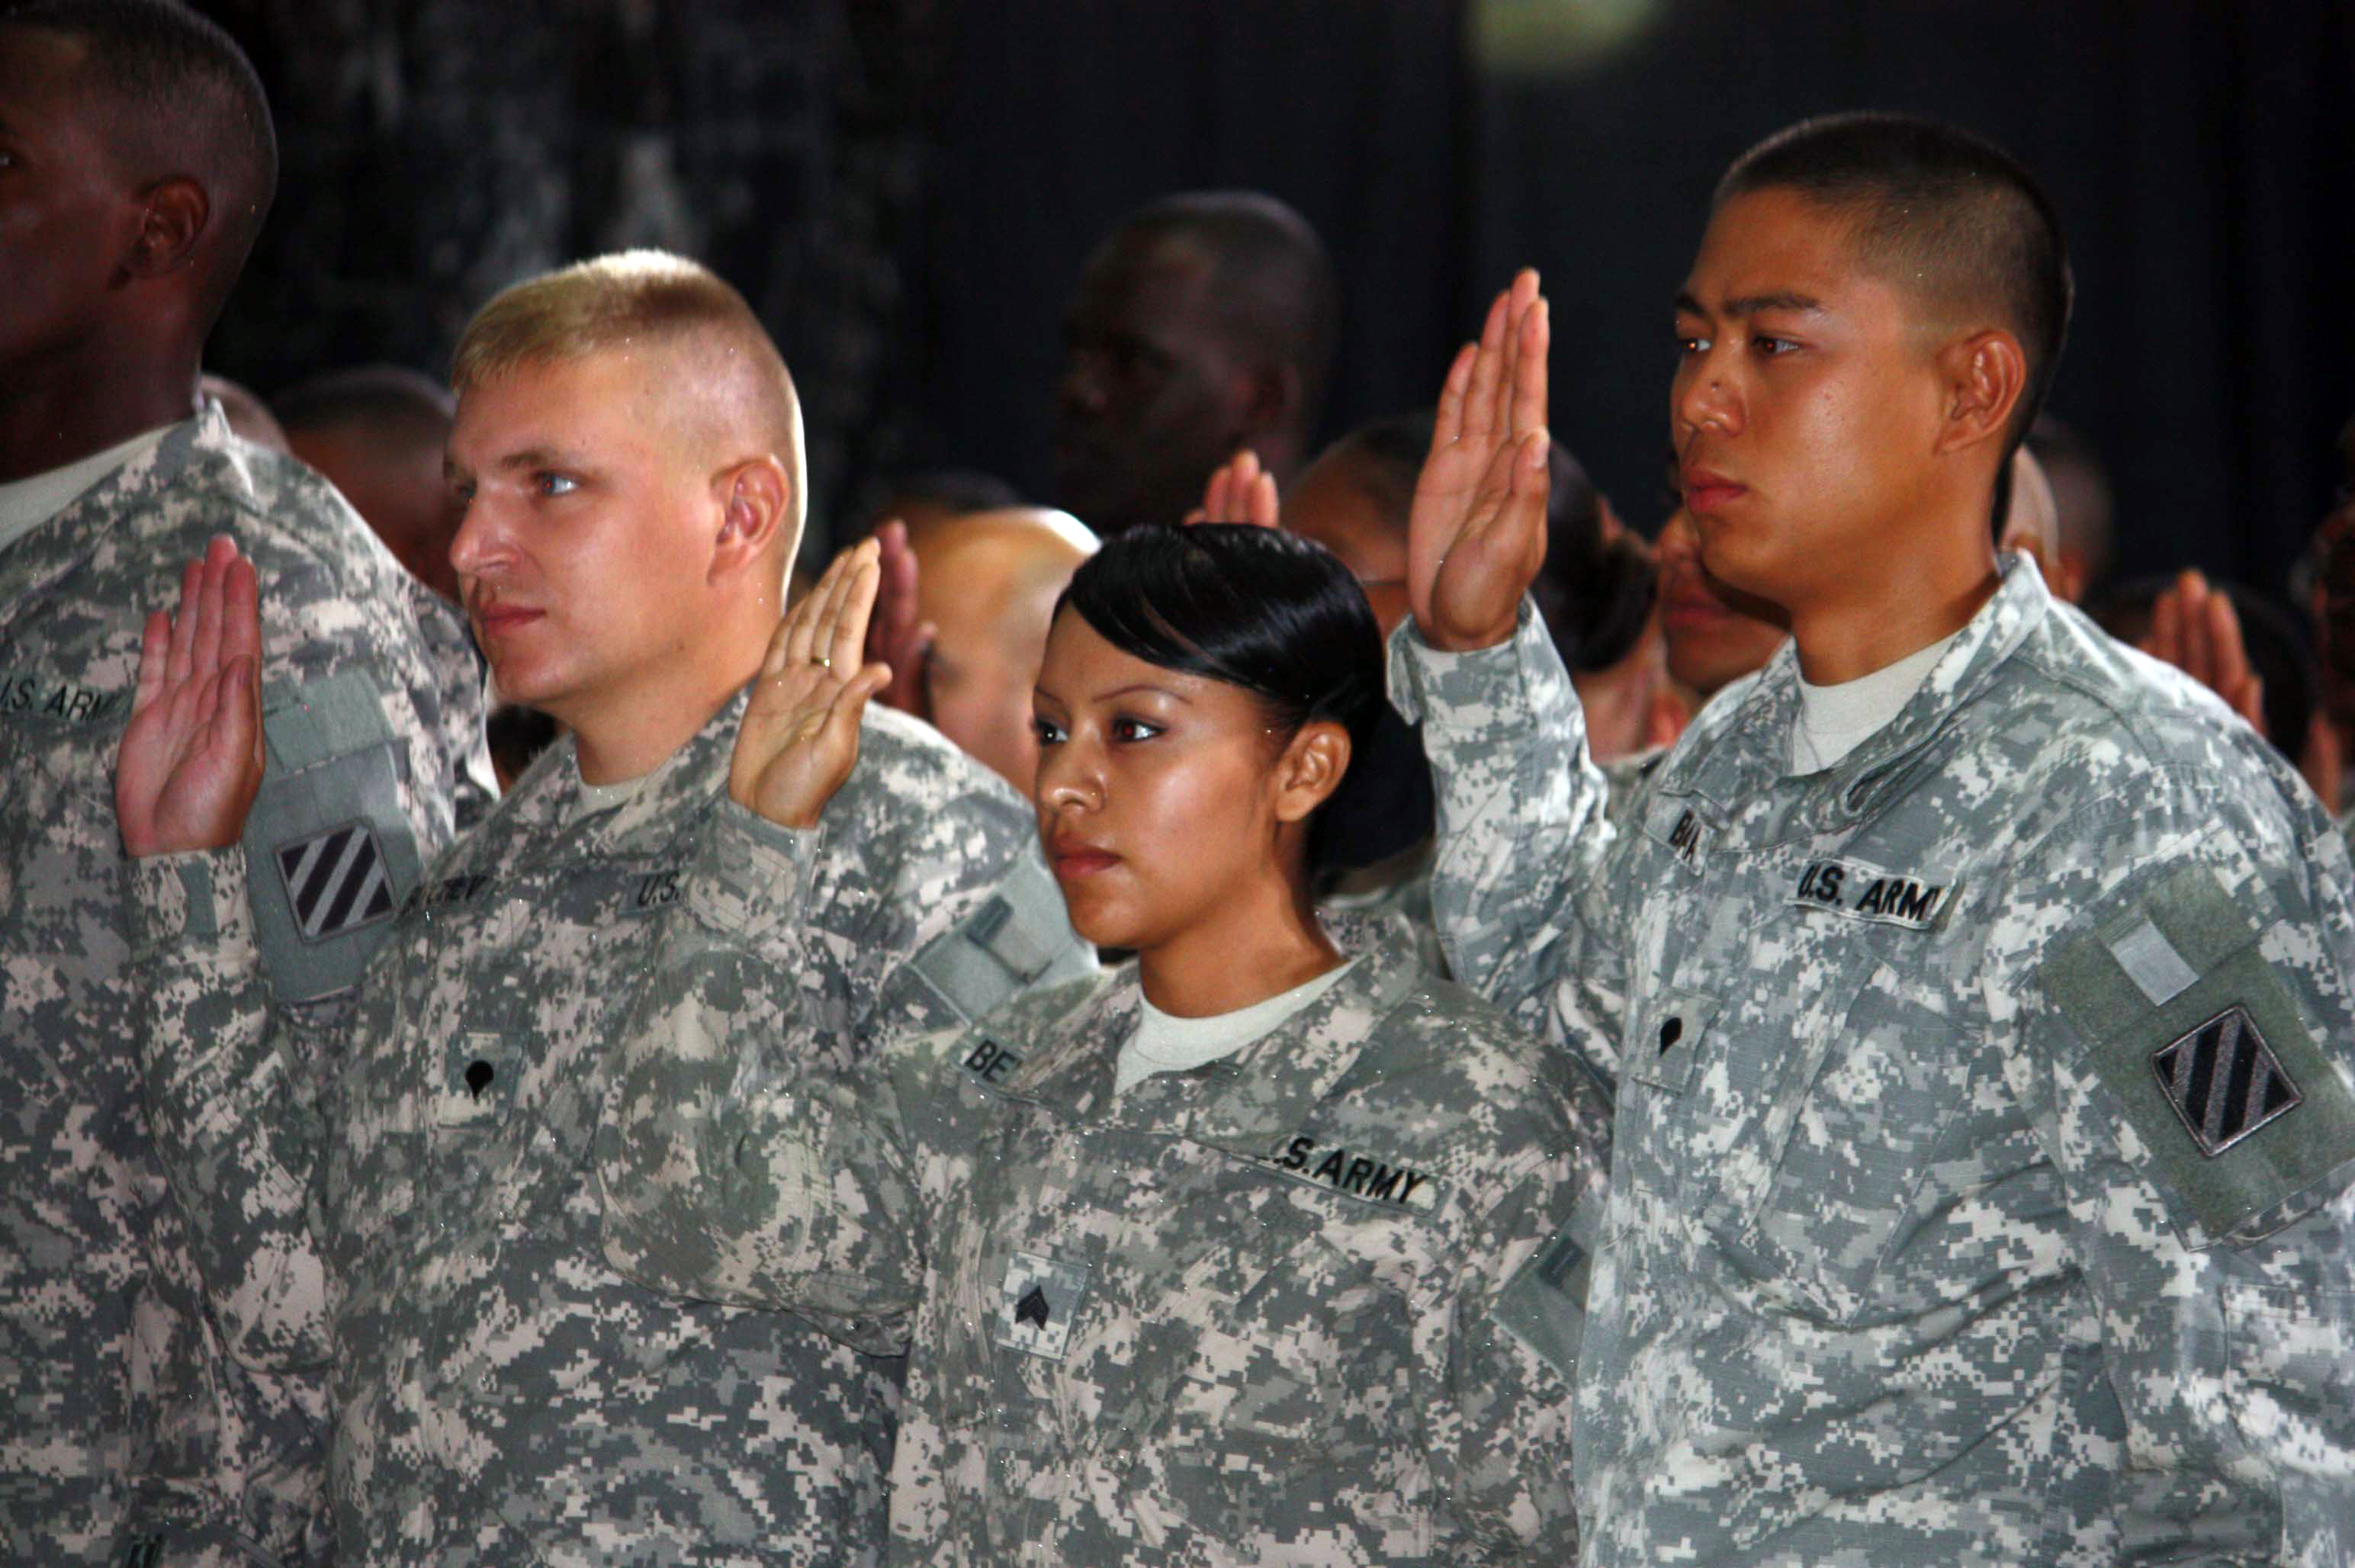 U.S. troops take the citizenship oath during a naturalization ceremony